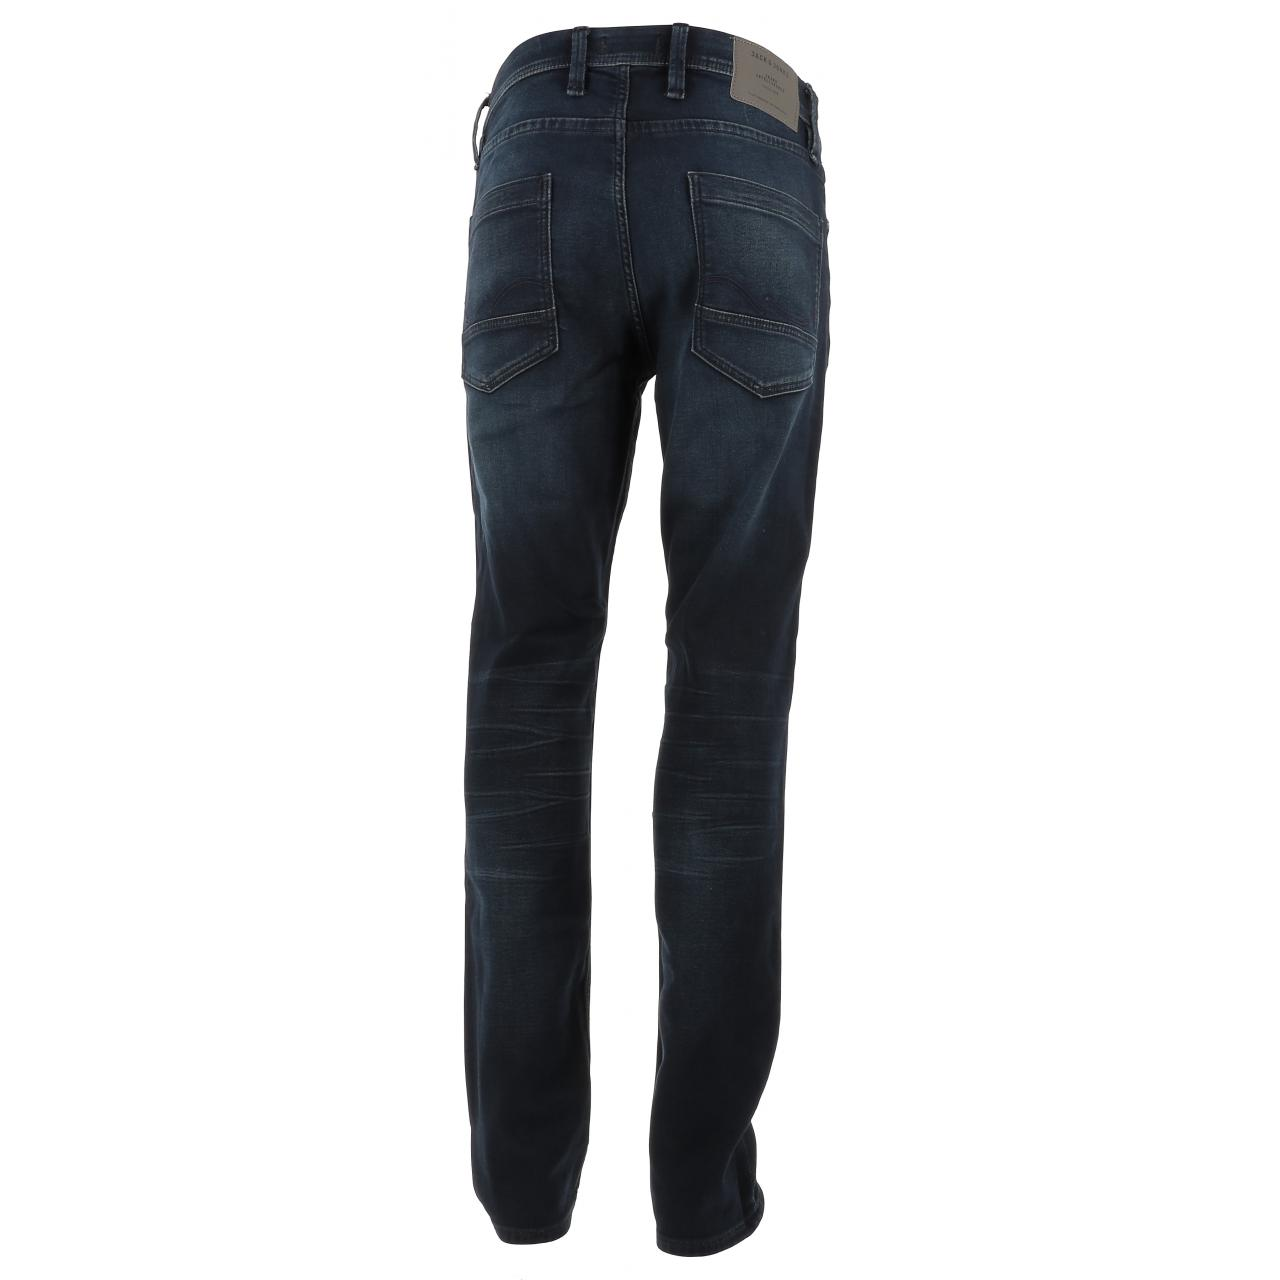 Slim 34 Pantalon Bleu Denim 12256 Neuf Tim Jeans Blue And Jones Jack 6wqawxR